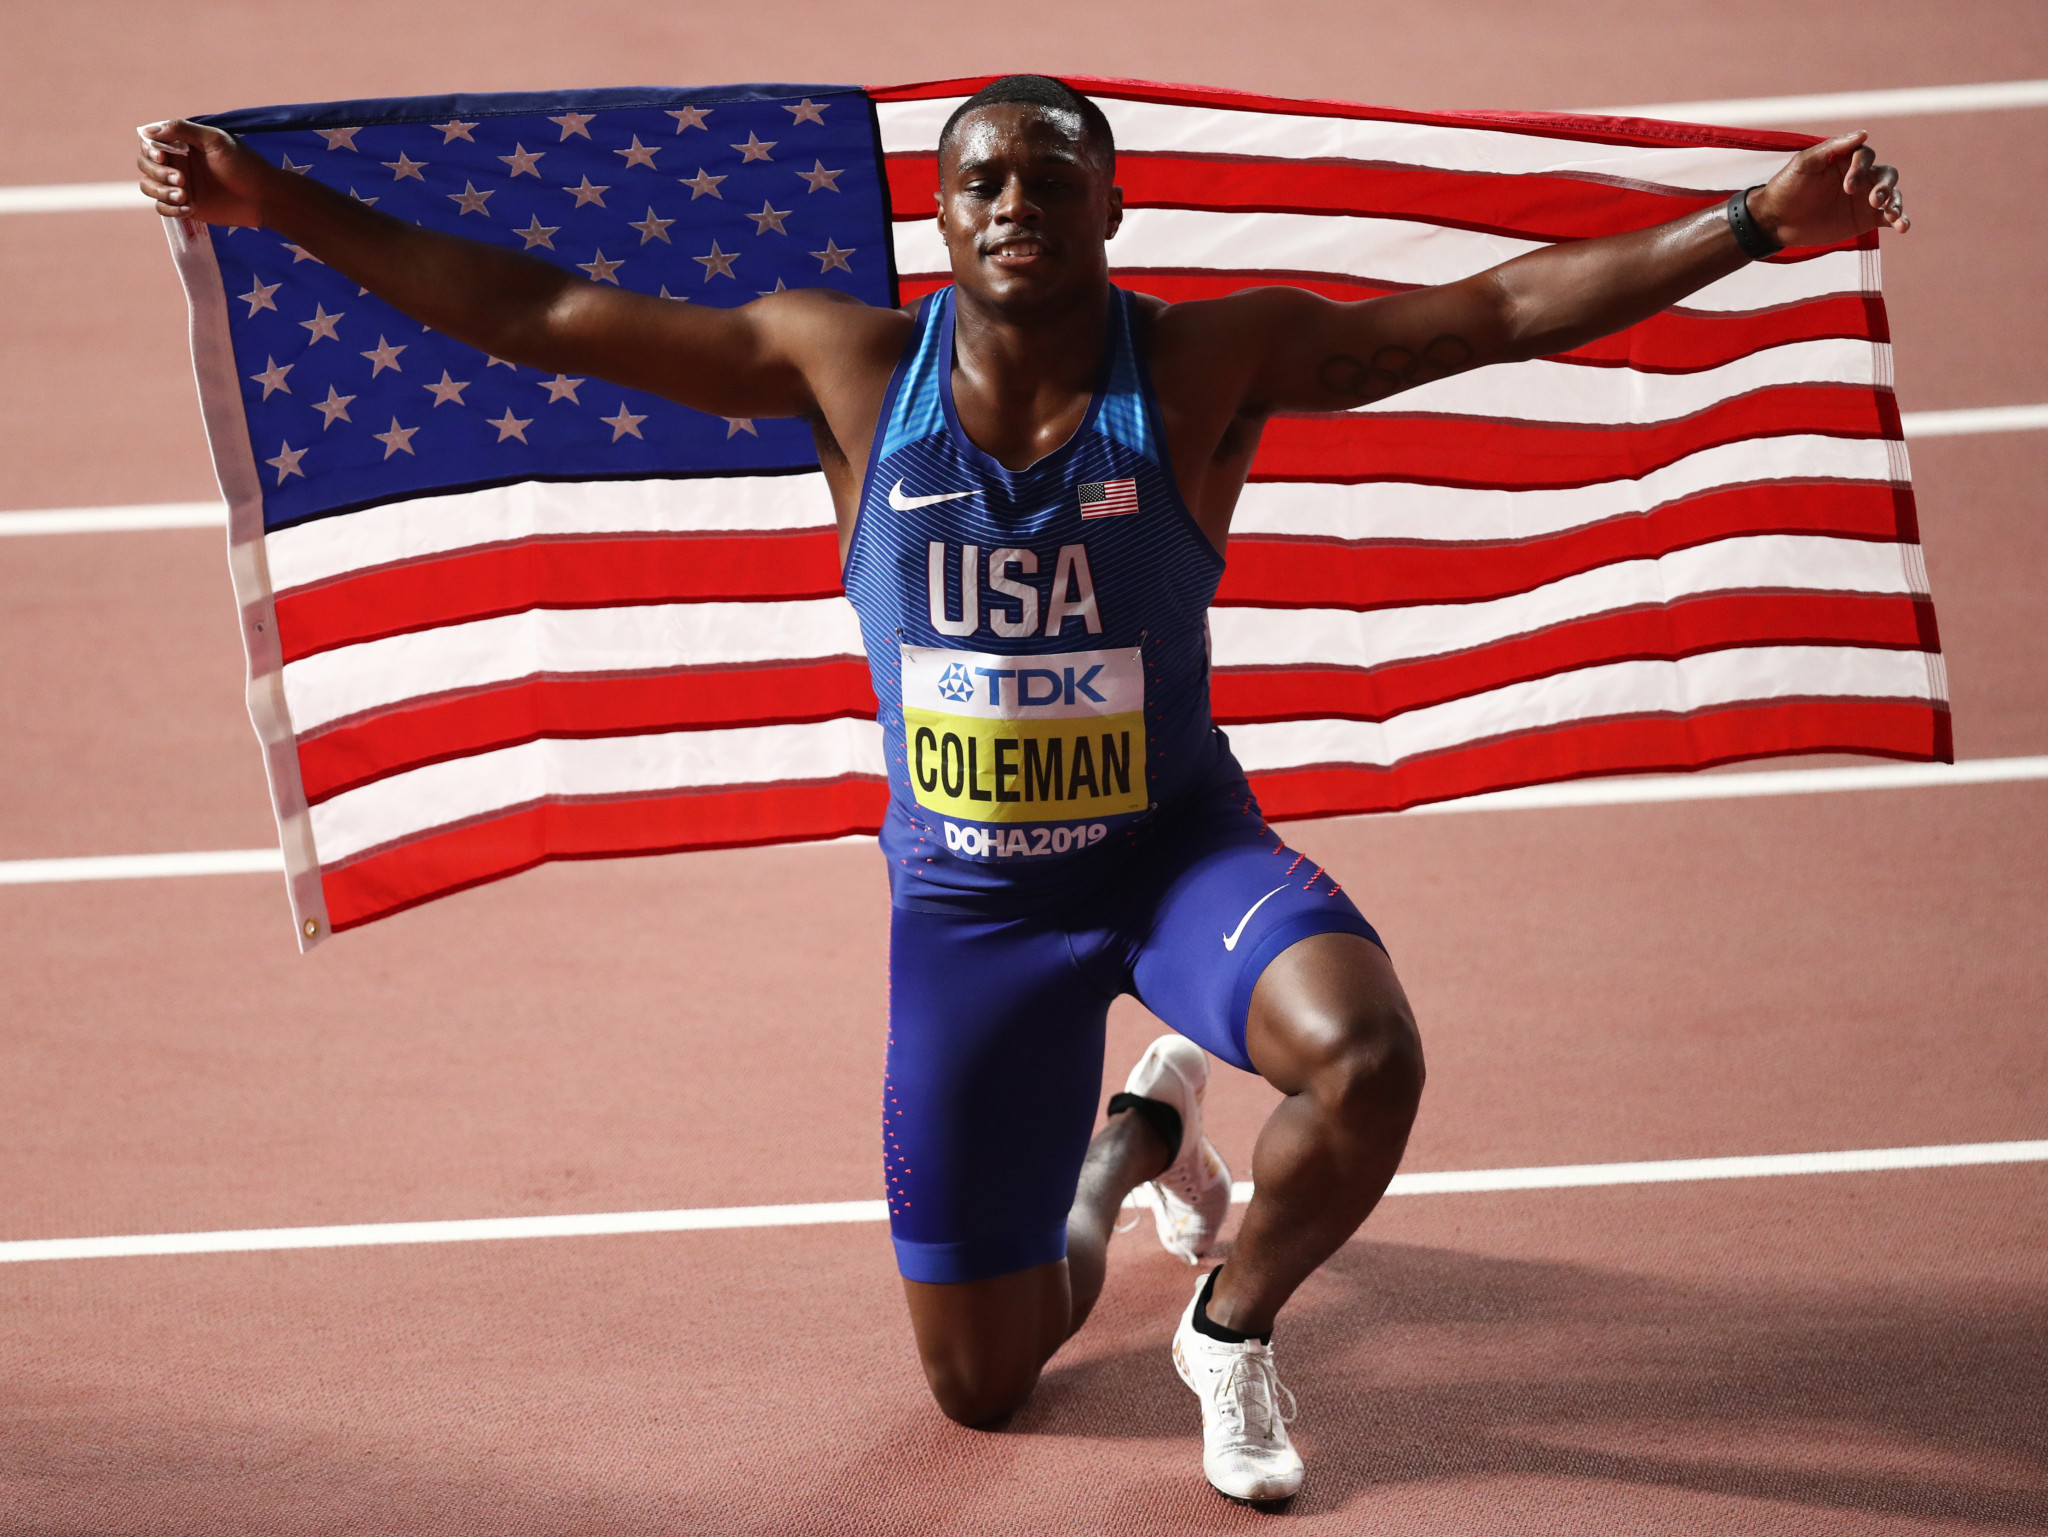 Coleman still out of Olympics as doping ban cut to 18 months